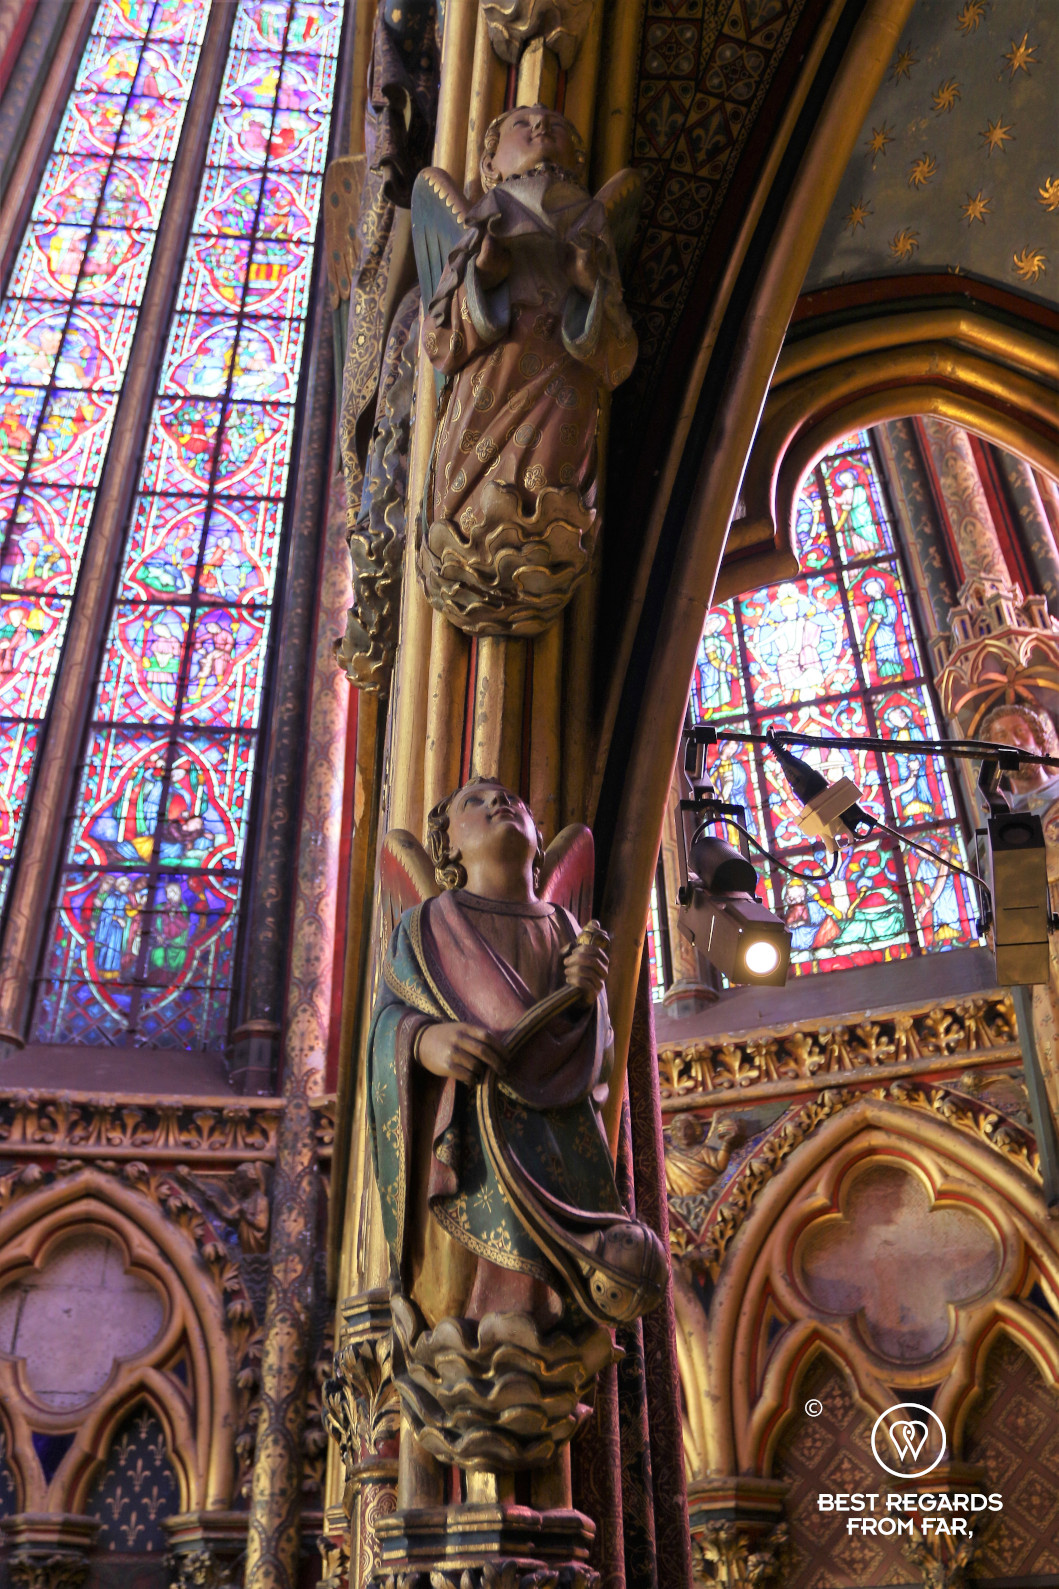 Close-up of angels in la Sainte Chapelle with its stained-glass windows in the background, Paris, France